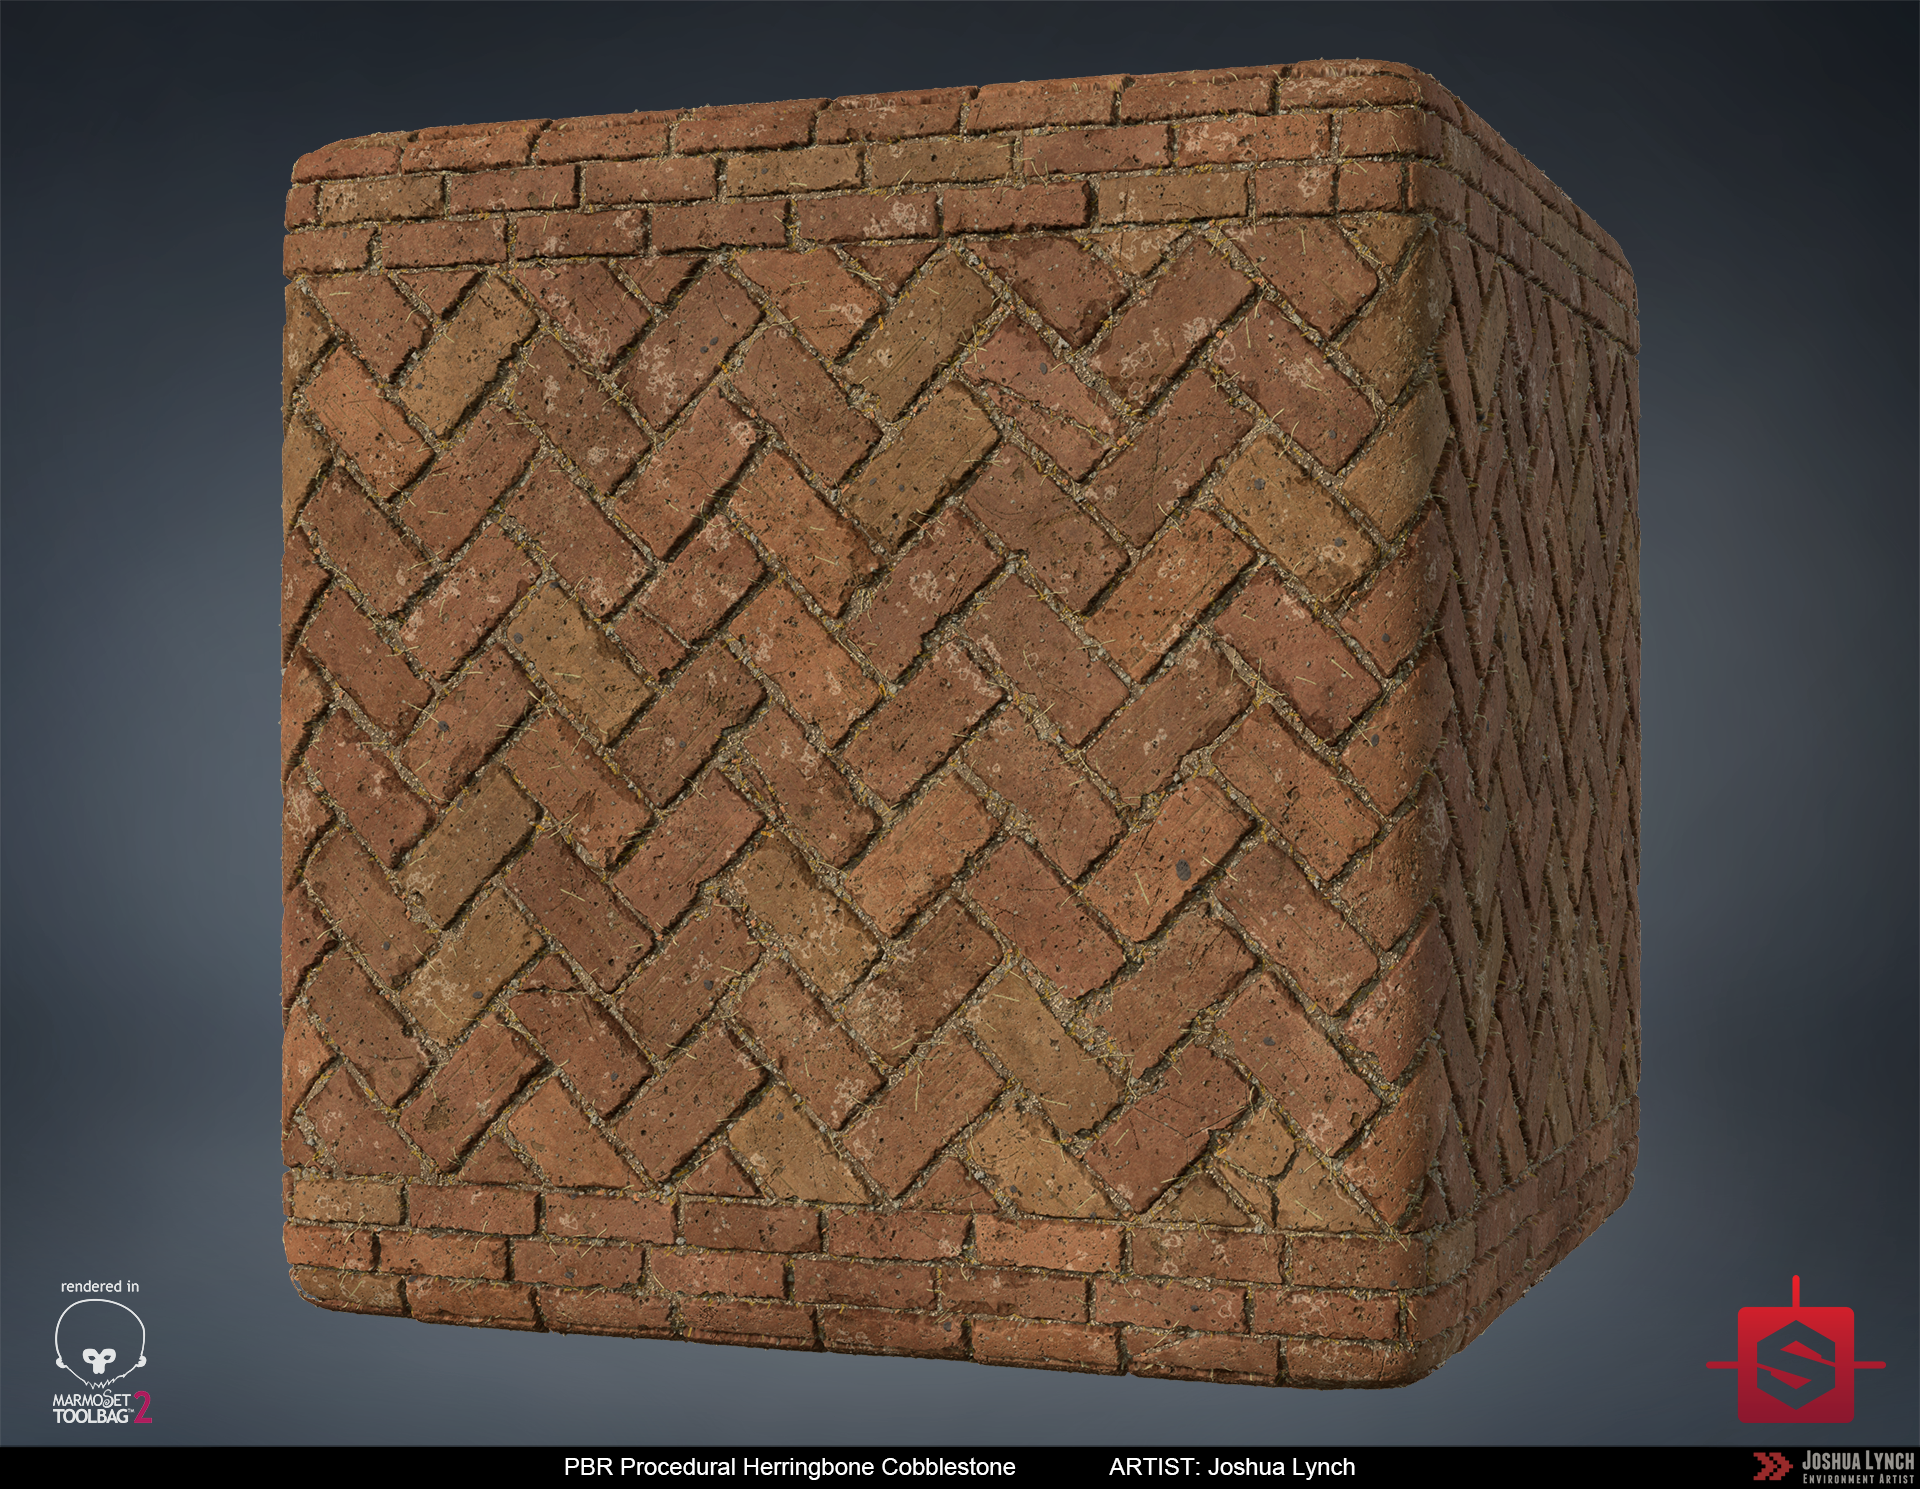 Floor_Cobblestone_Herringbone_Cube_Rev_04_Layout_Comp_Josh_Lynch.png